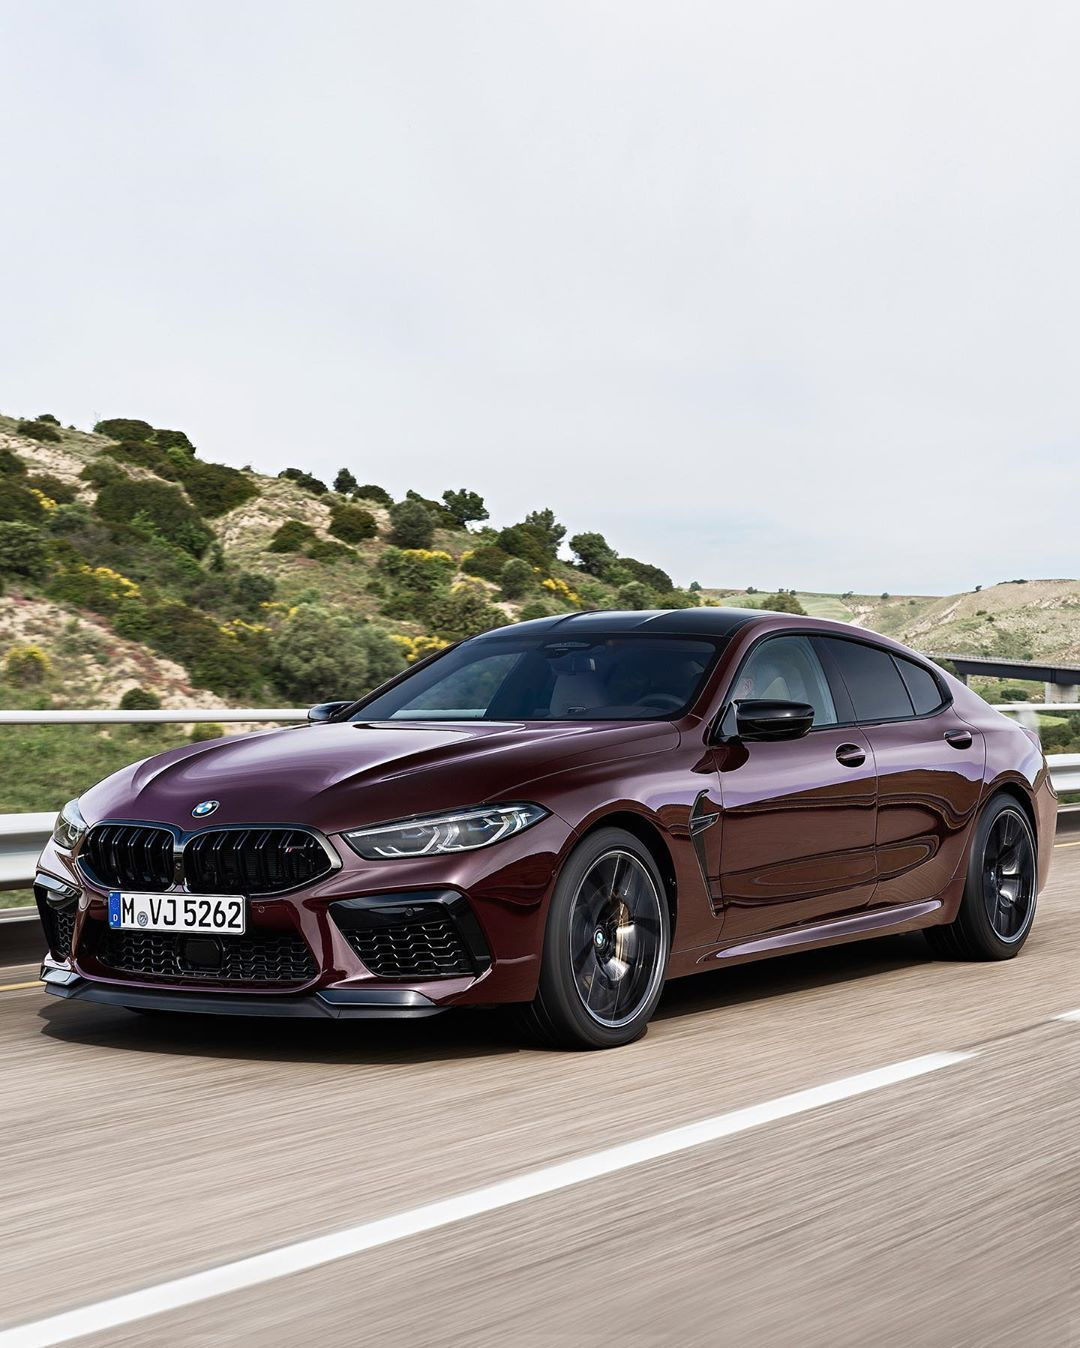 Motortrend On Instagram The All New 2020 Bmw M8 Gran Coupe Arrives With 617 Horses Hit The Link In Our Bio For More Details Bmw Bmw Gran Coupe Bmw Cars